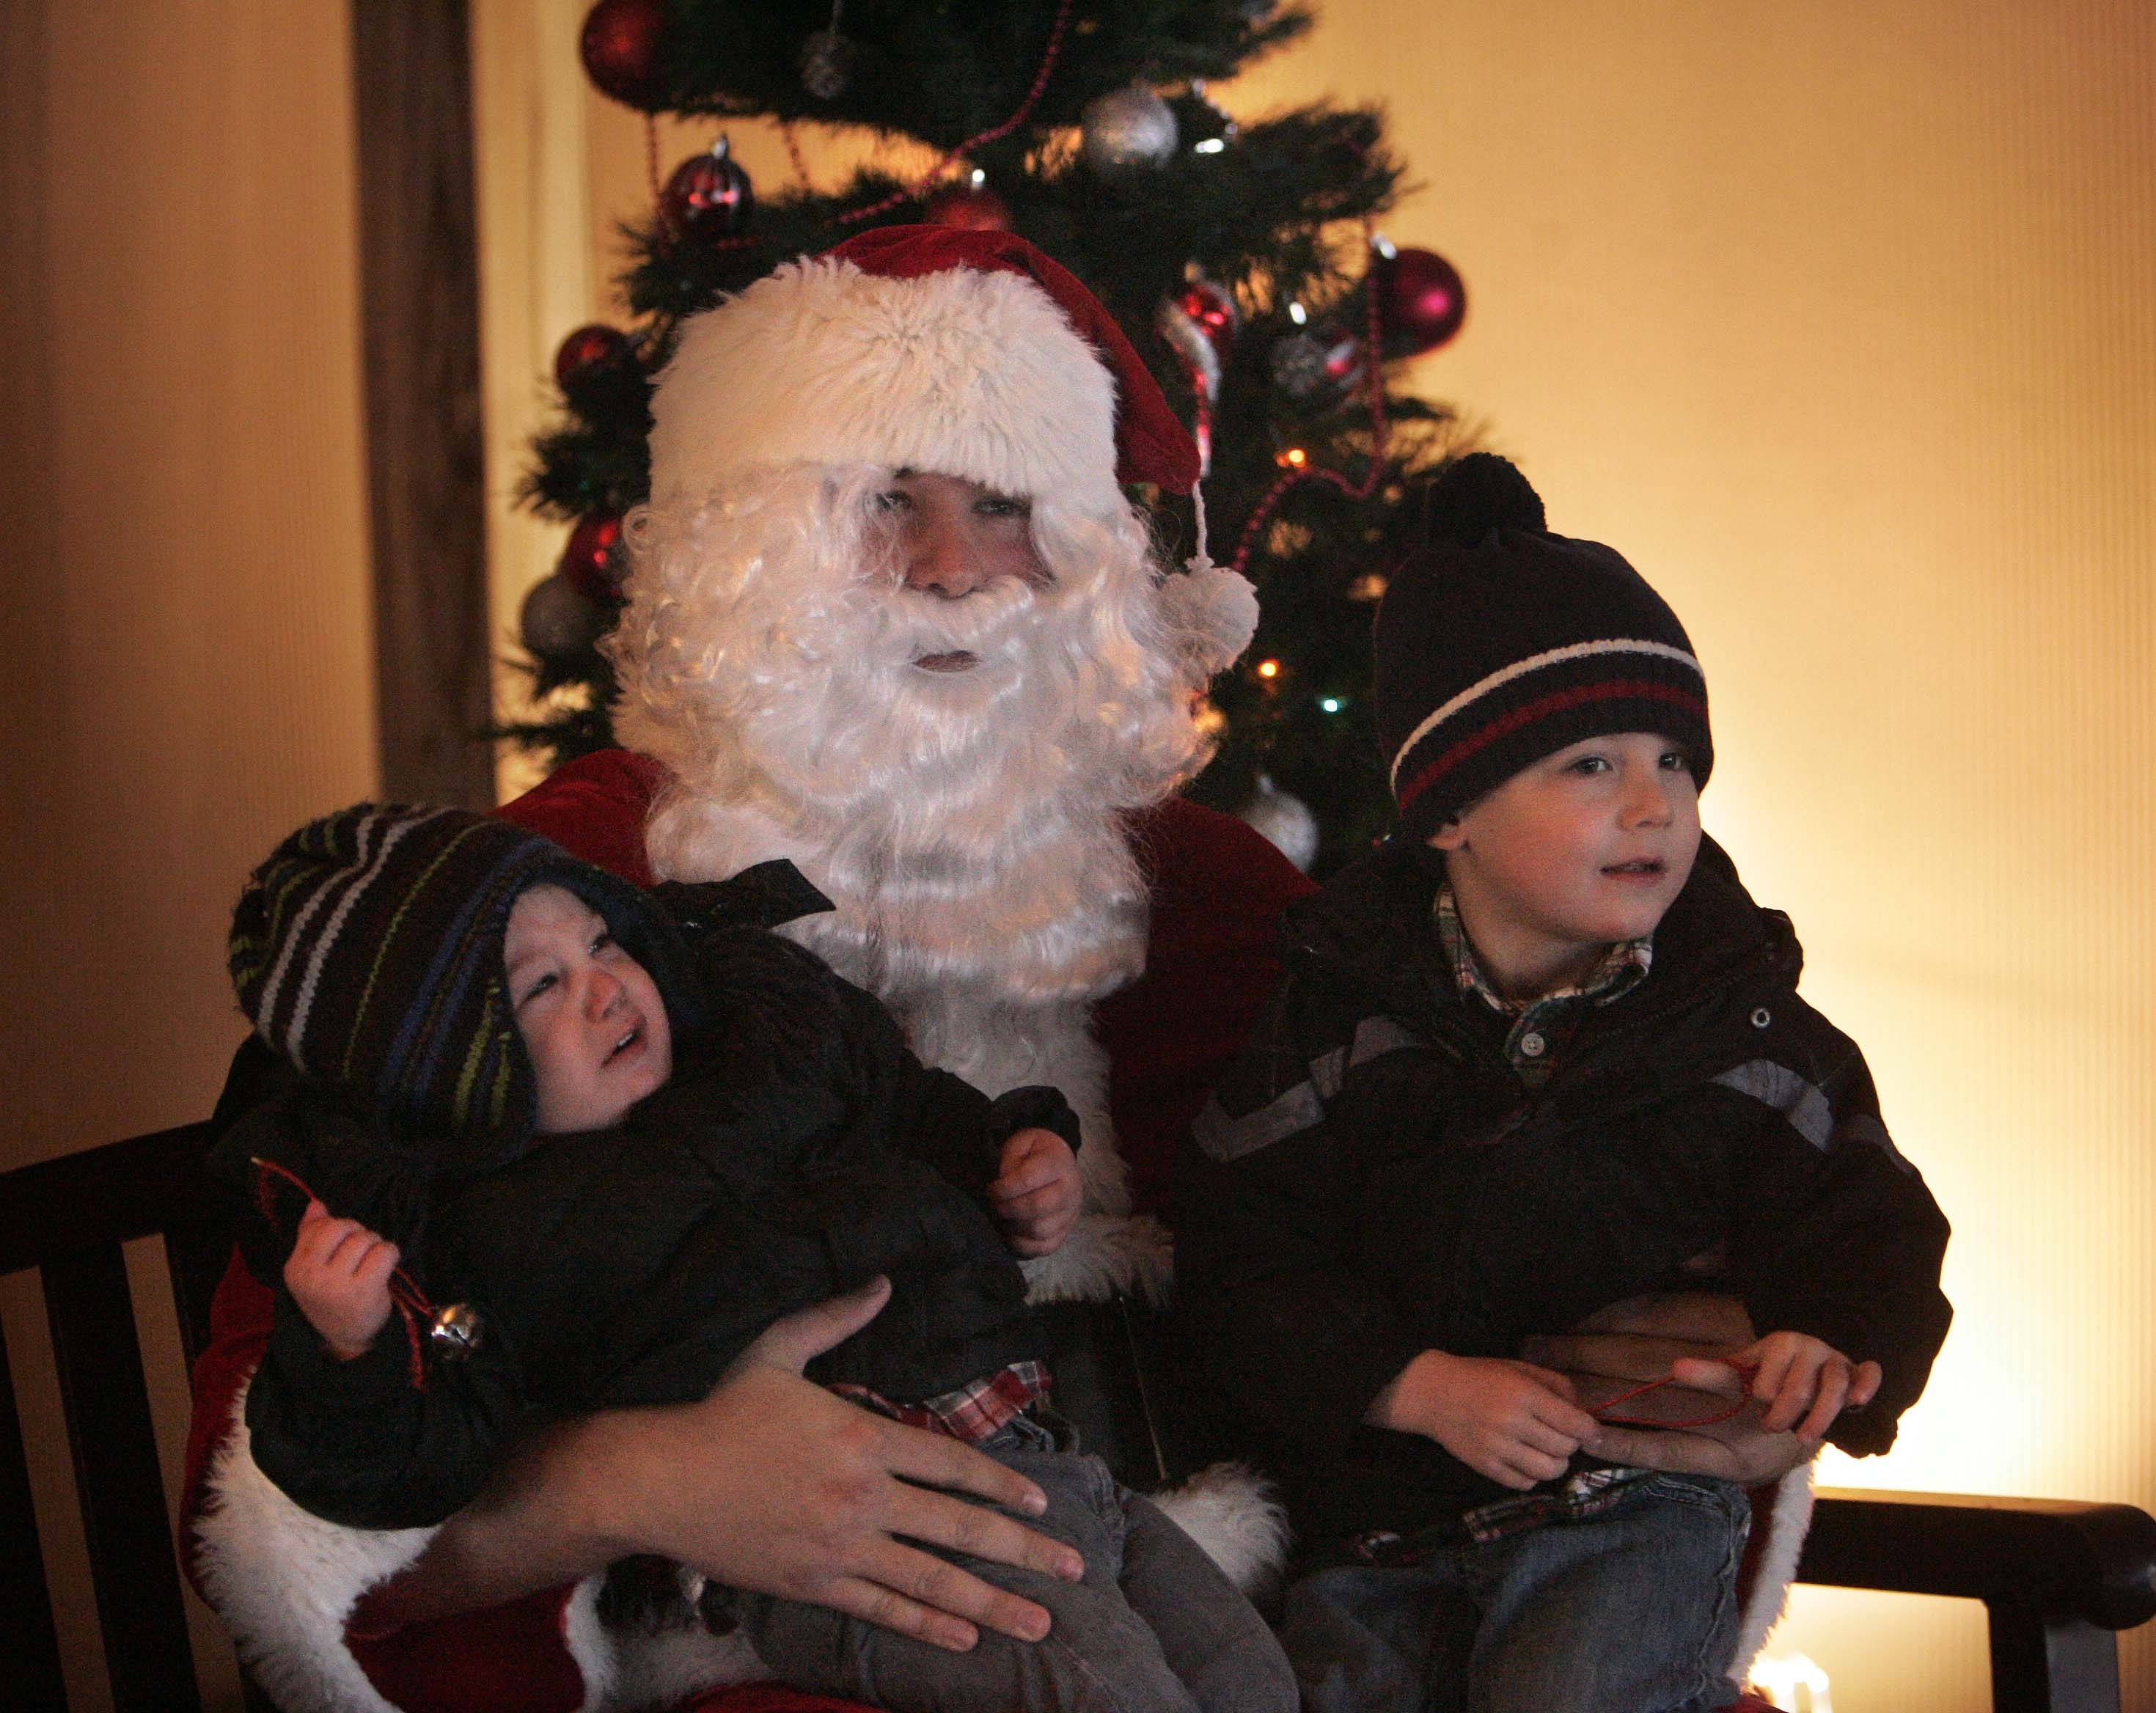 Fifteen-month-old Will Korbmacher of Geneva is not quite as sure about the man with the big white beard as his 3-year-old brother, Dylan. The boys sat on Santa's lap Saturday during the Geneva Park District's Polar Express event at Peck Farm Park.